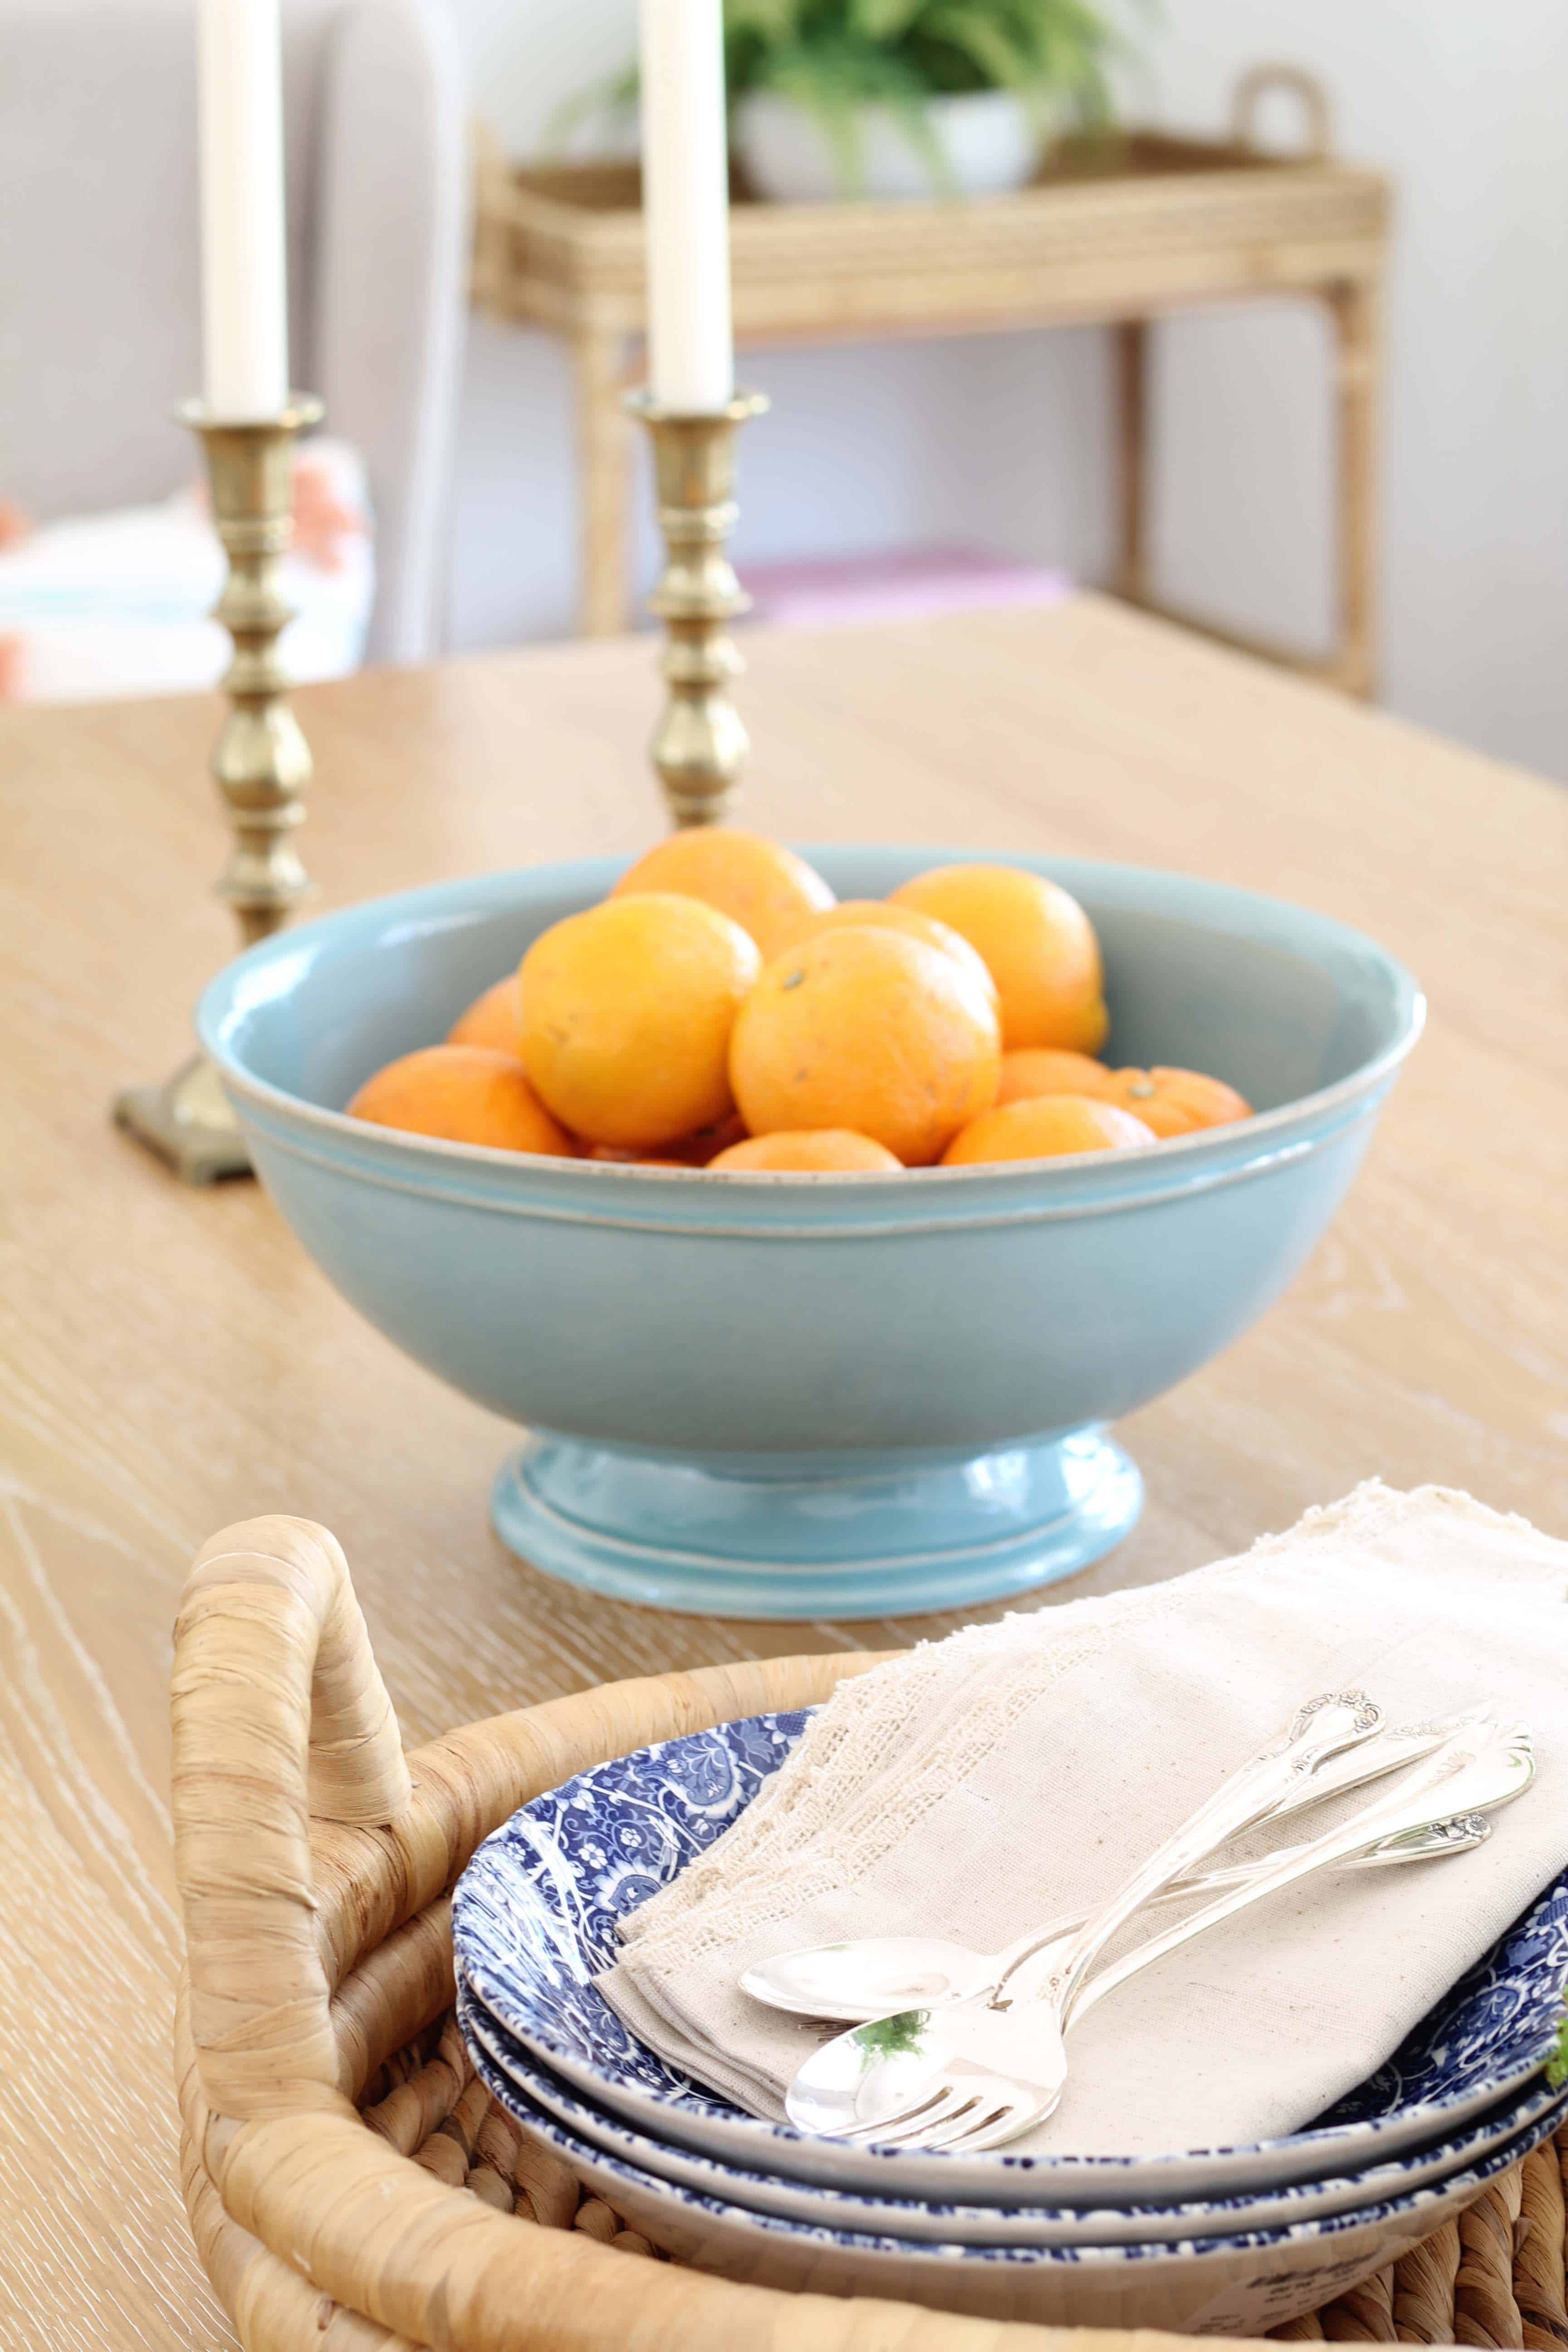 oranges in aqua bowl, brass candlesticks, blue transfer ware bowls with antique silverware